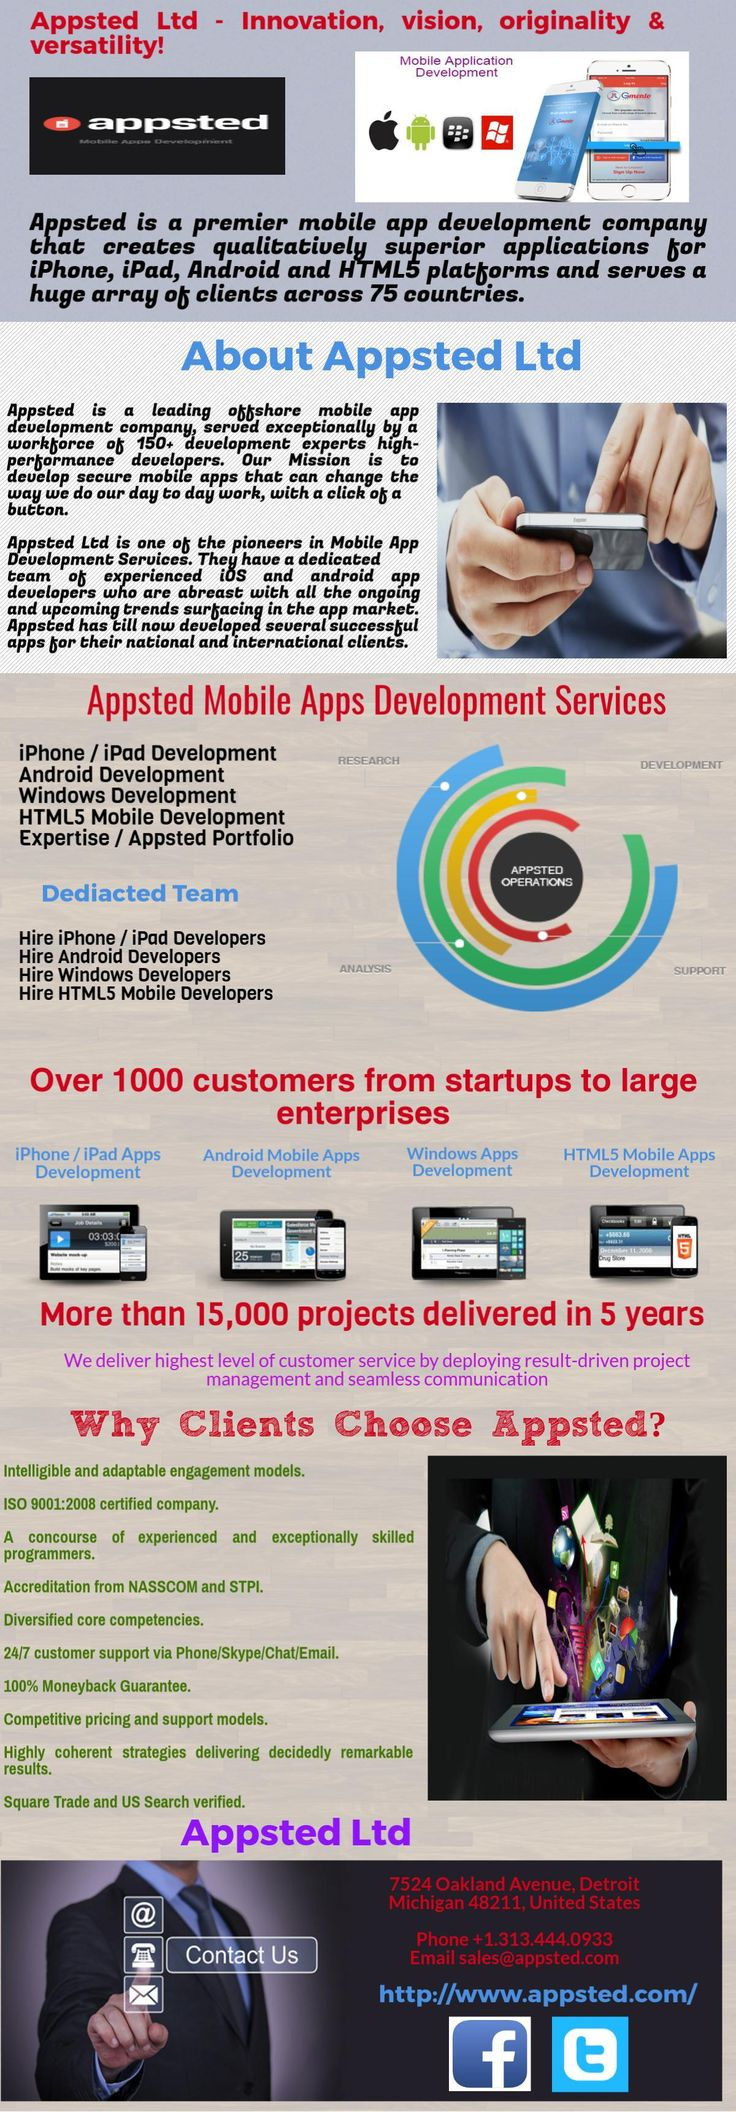 #Appsted Ltd is a leading offshore #mobile #app #development #company, served exceptionally by a workforce of 150+ development experts high-performance developers. Our Mission is to develop secure mobile apps that can change the way we do our day to day work, with a click of a button.